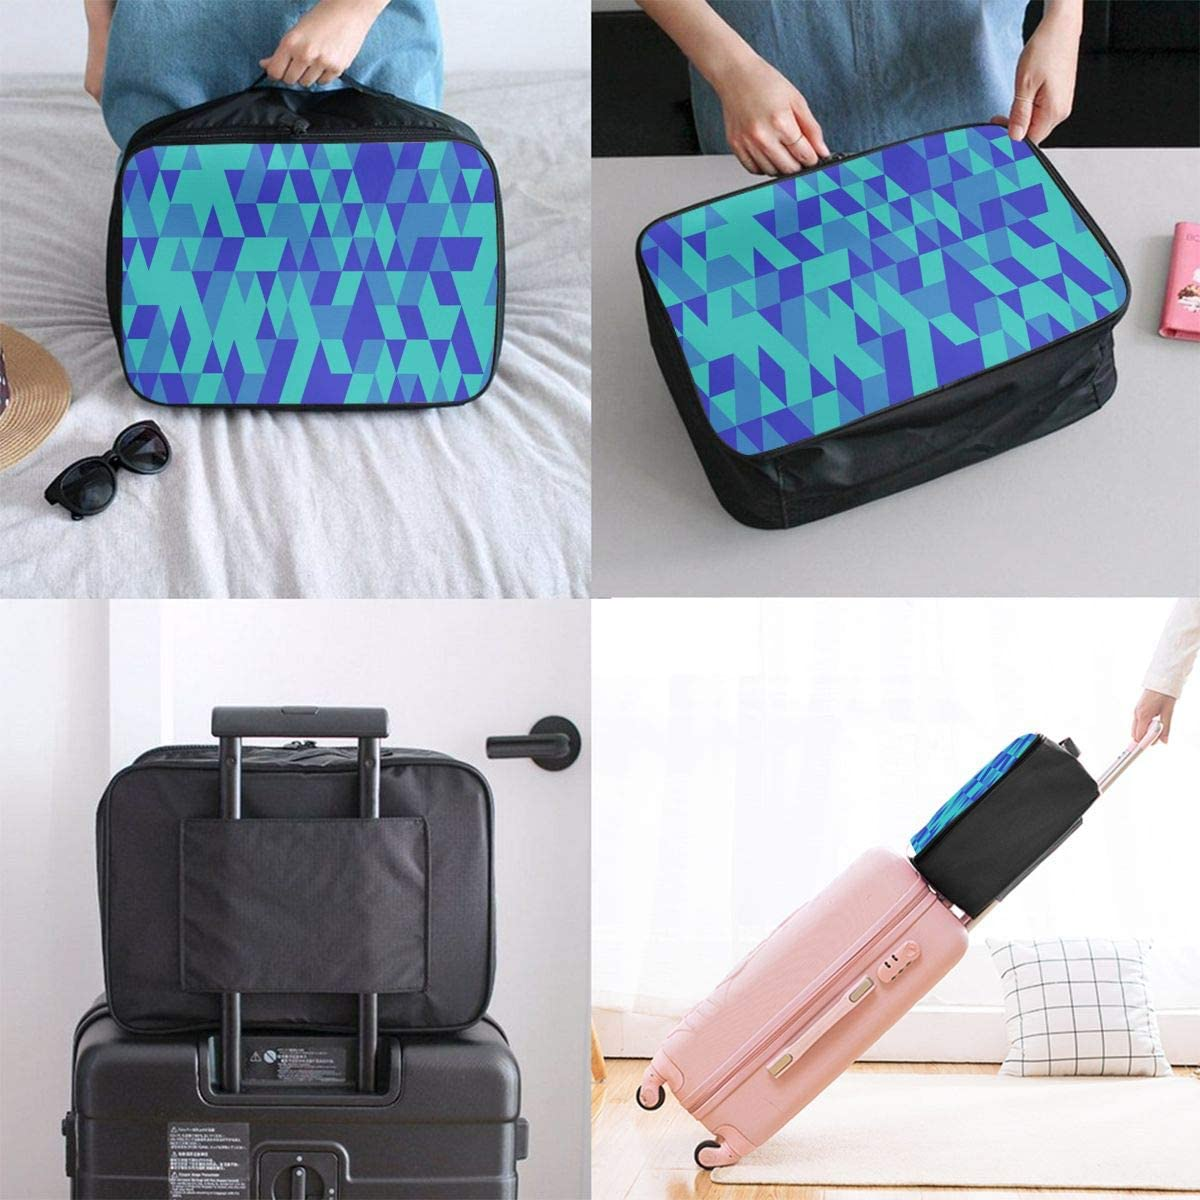 Culora Color Kaleidoscope Lightweight Large Capacity Portable Luggage Bag